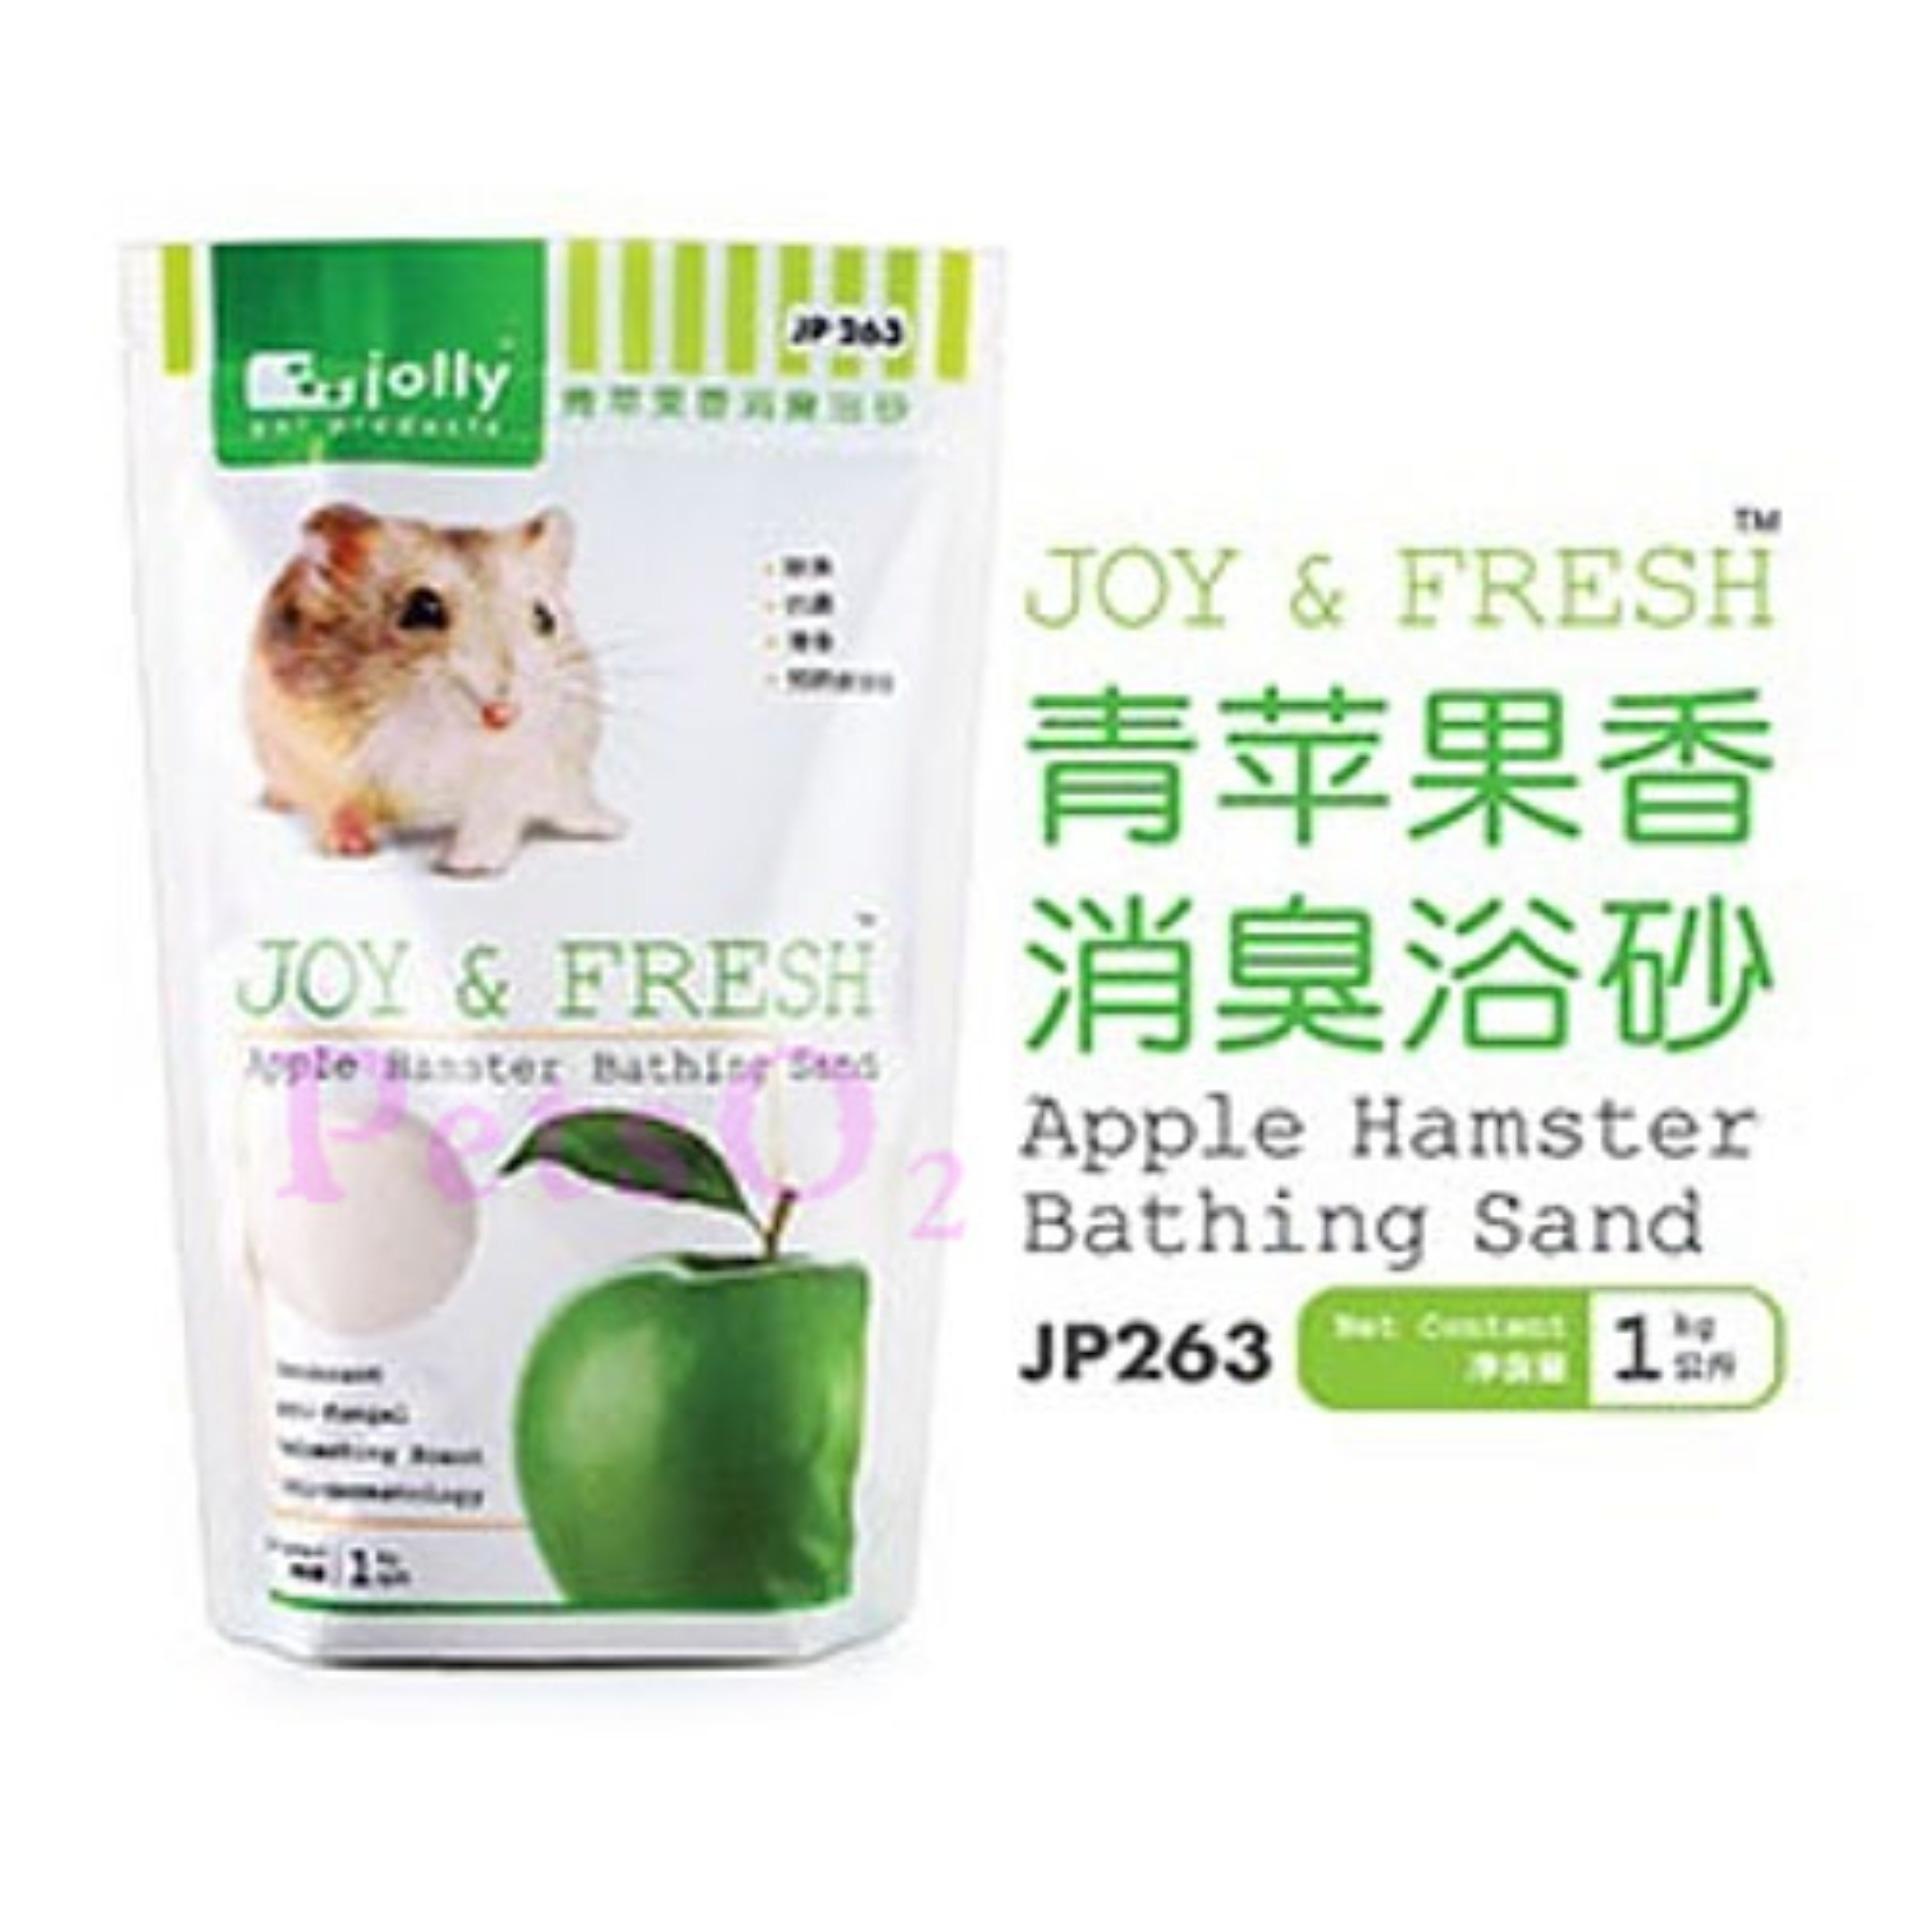 small pet grooming - Buy small pet grooming at Best Price in